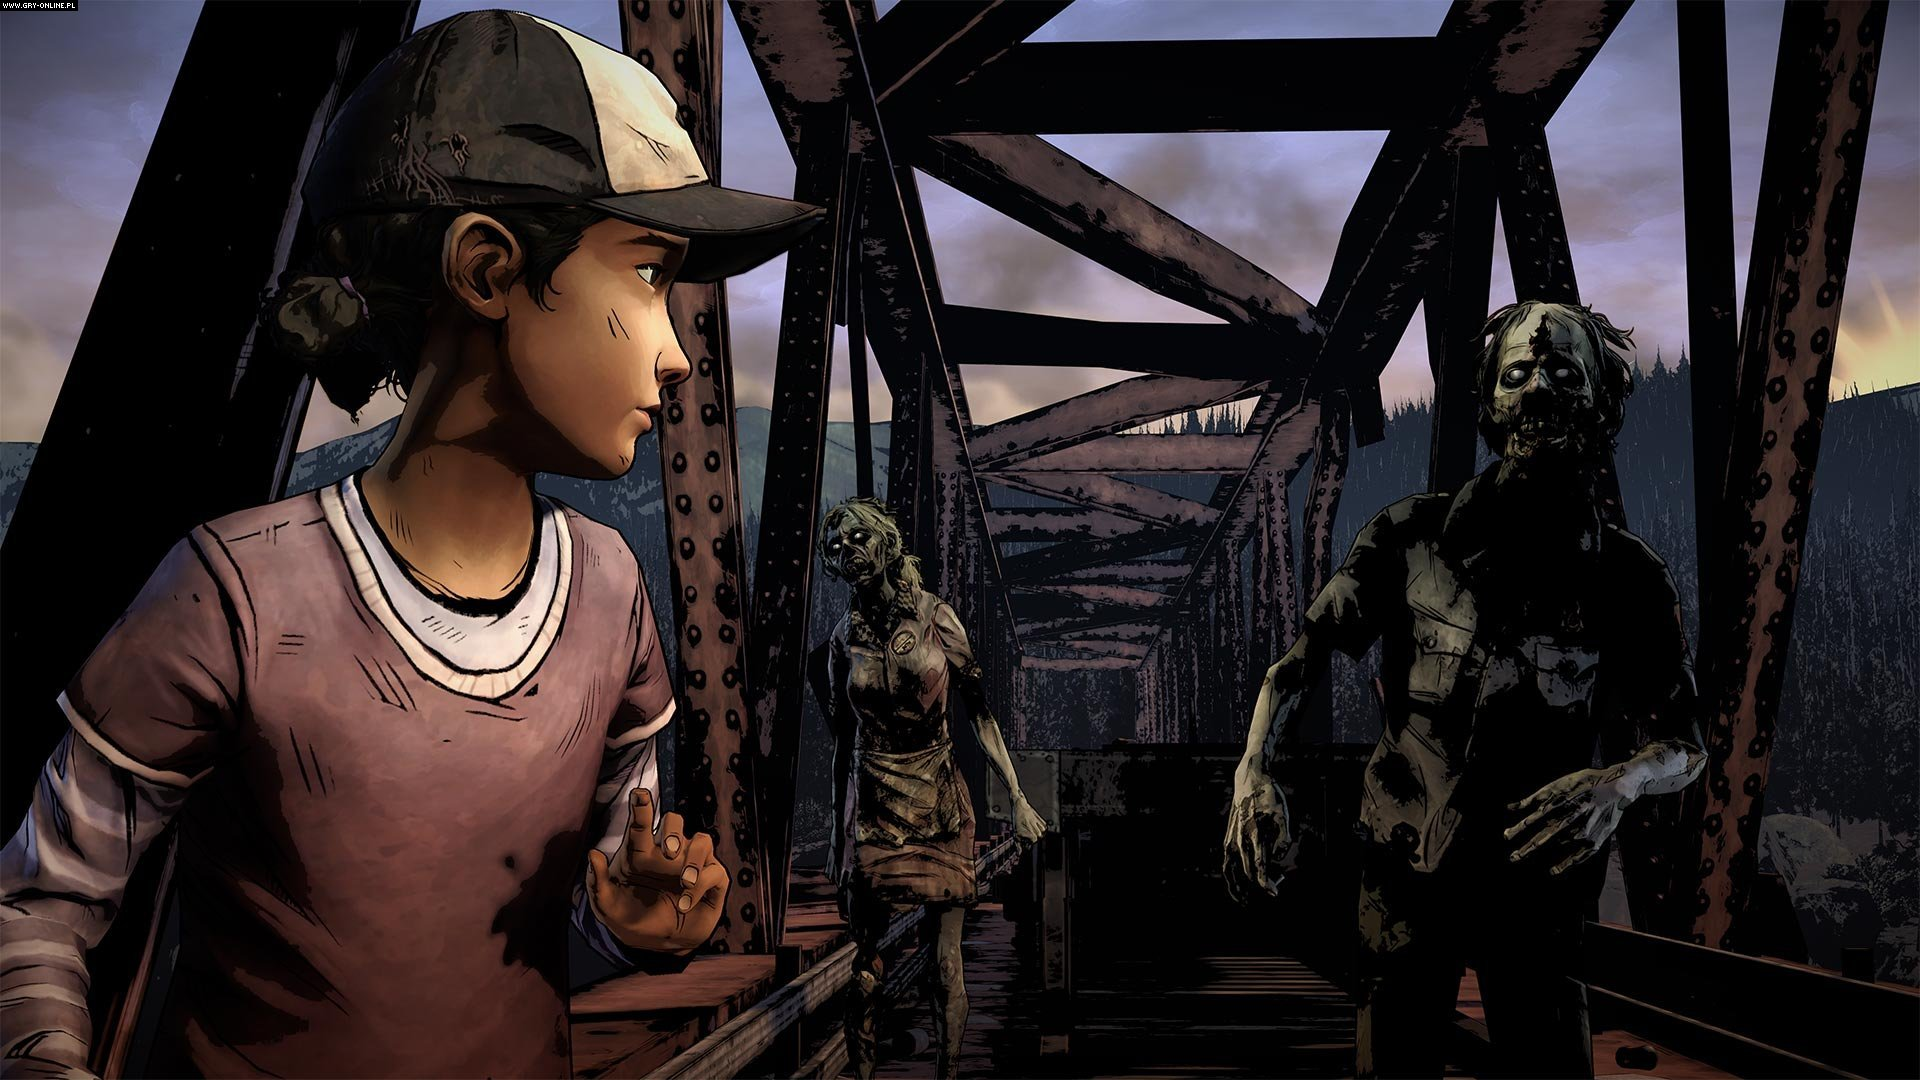 The Walking Dead: The Telltale Definitive Series PC, PS4, XONE Games Image 5/6, Telltale Games, Skybound Games